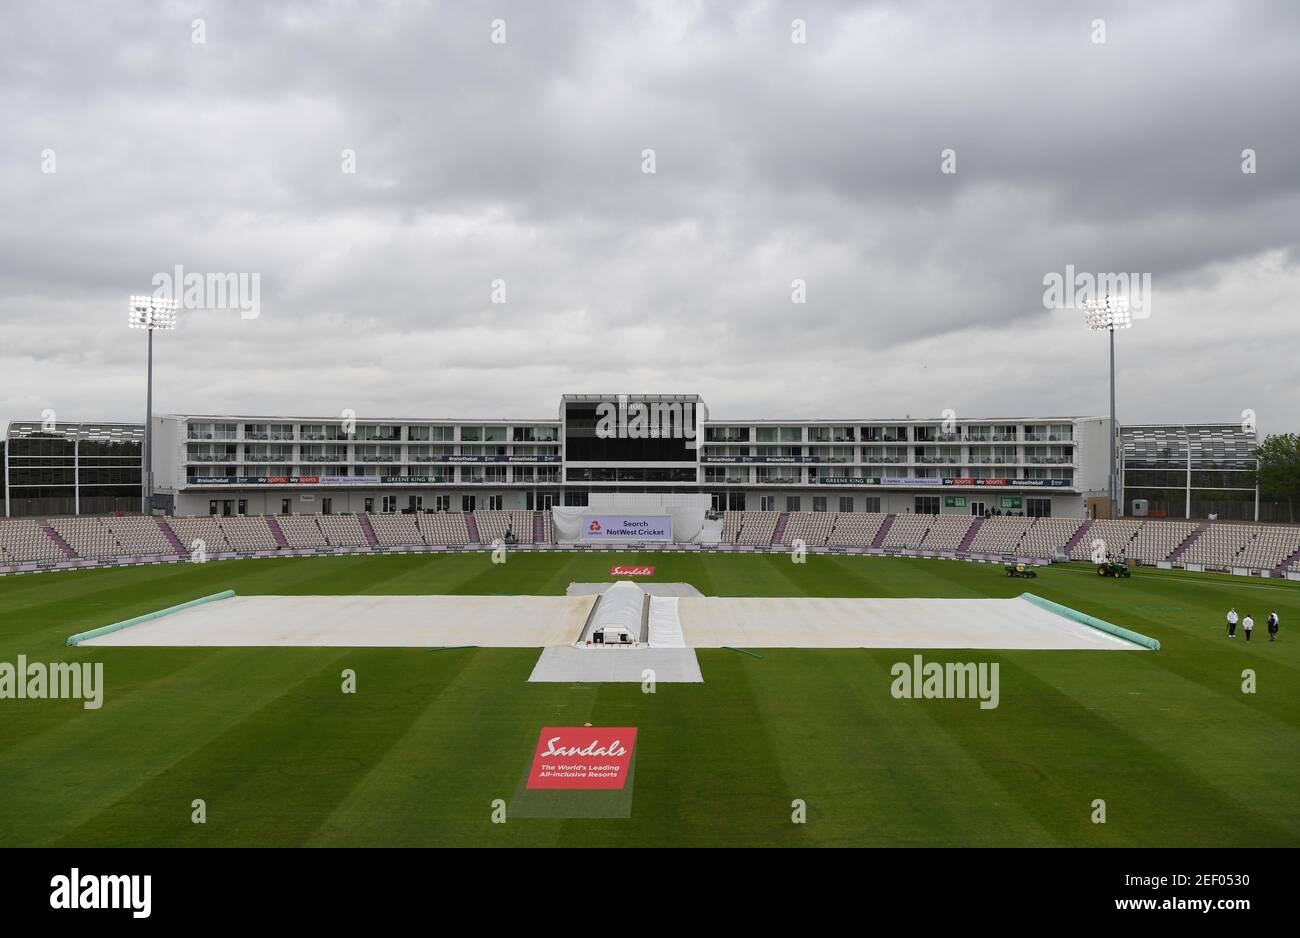 Cricket - First Test - England v West Indies - Rose Bowl Cricket Stadium, Southampton, Britain - July 8, 2020   A general view of the pitch covered during a rain delay, as cricket resumes behind closed doors following the outbreak of the coronavirus disease (COVID-19)   Mike Hewitt/Pool via REUTERS Stock Photo